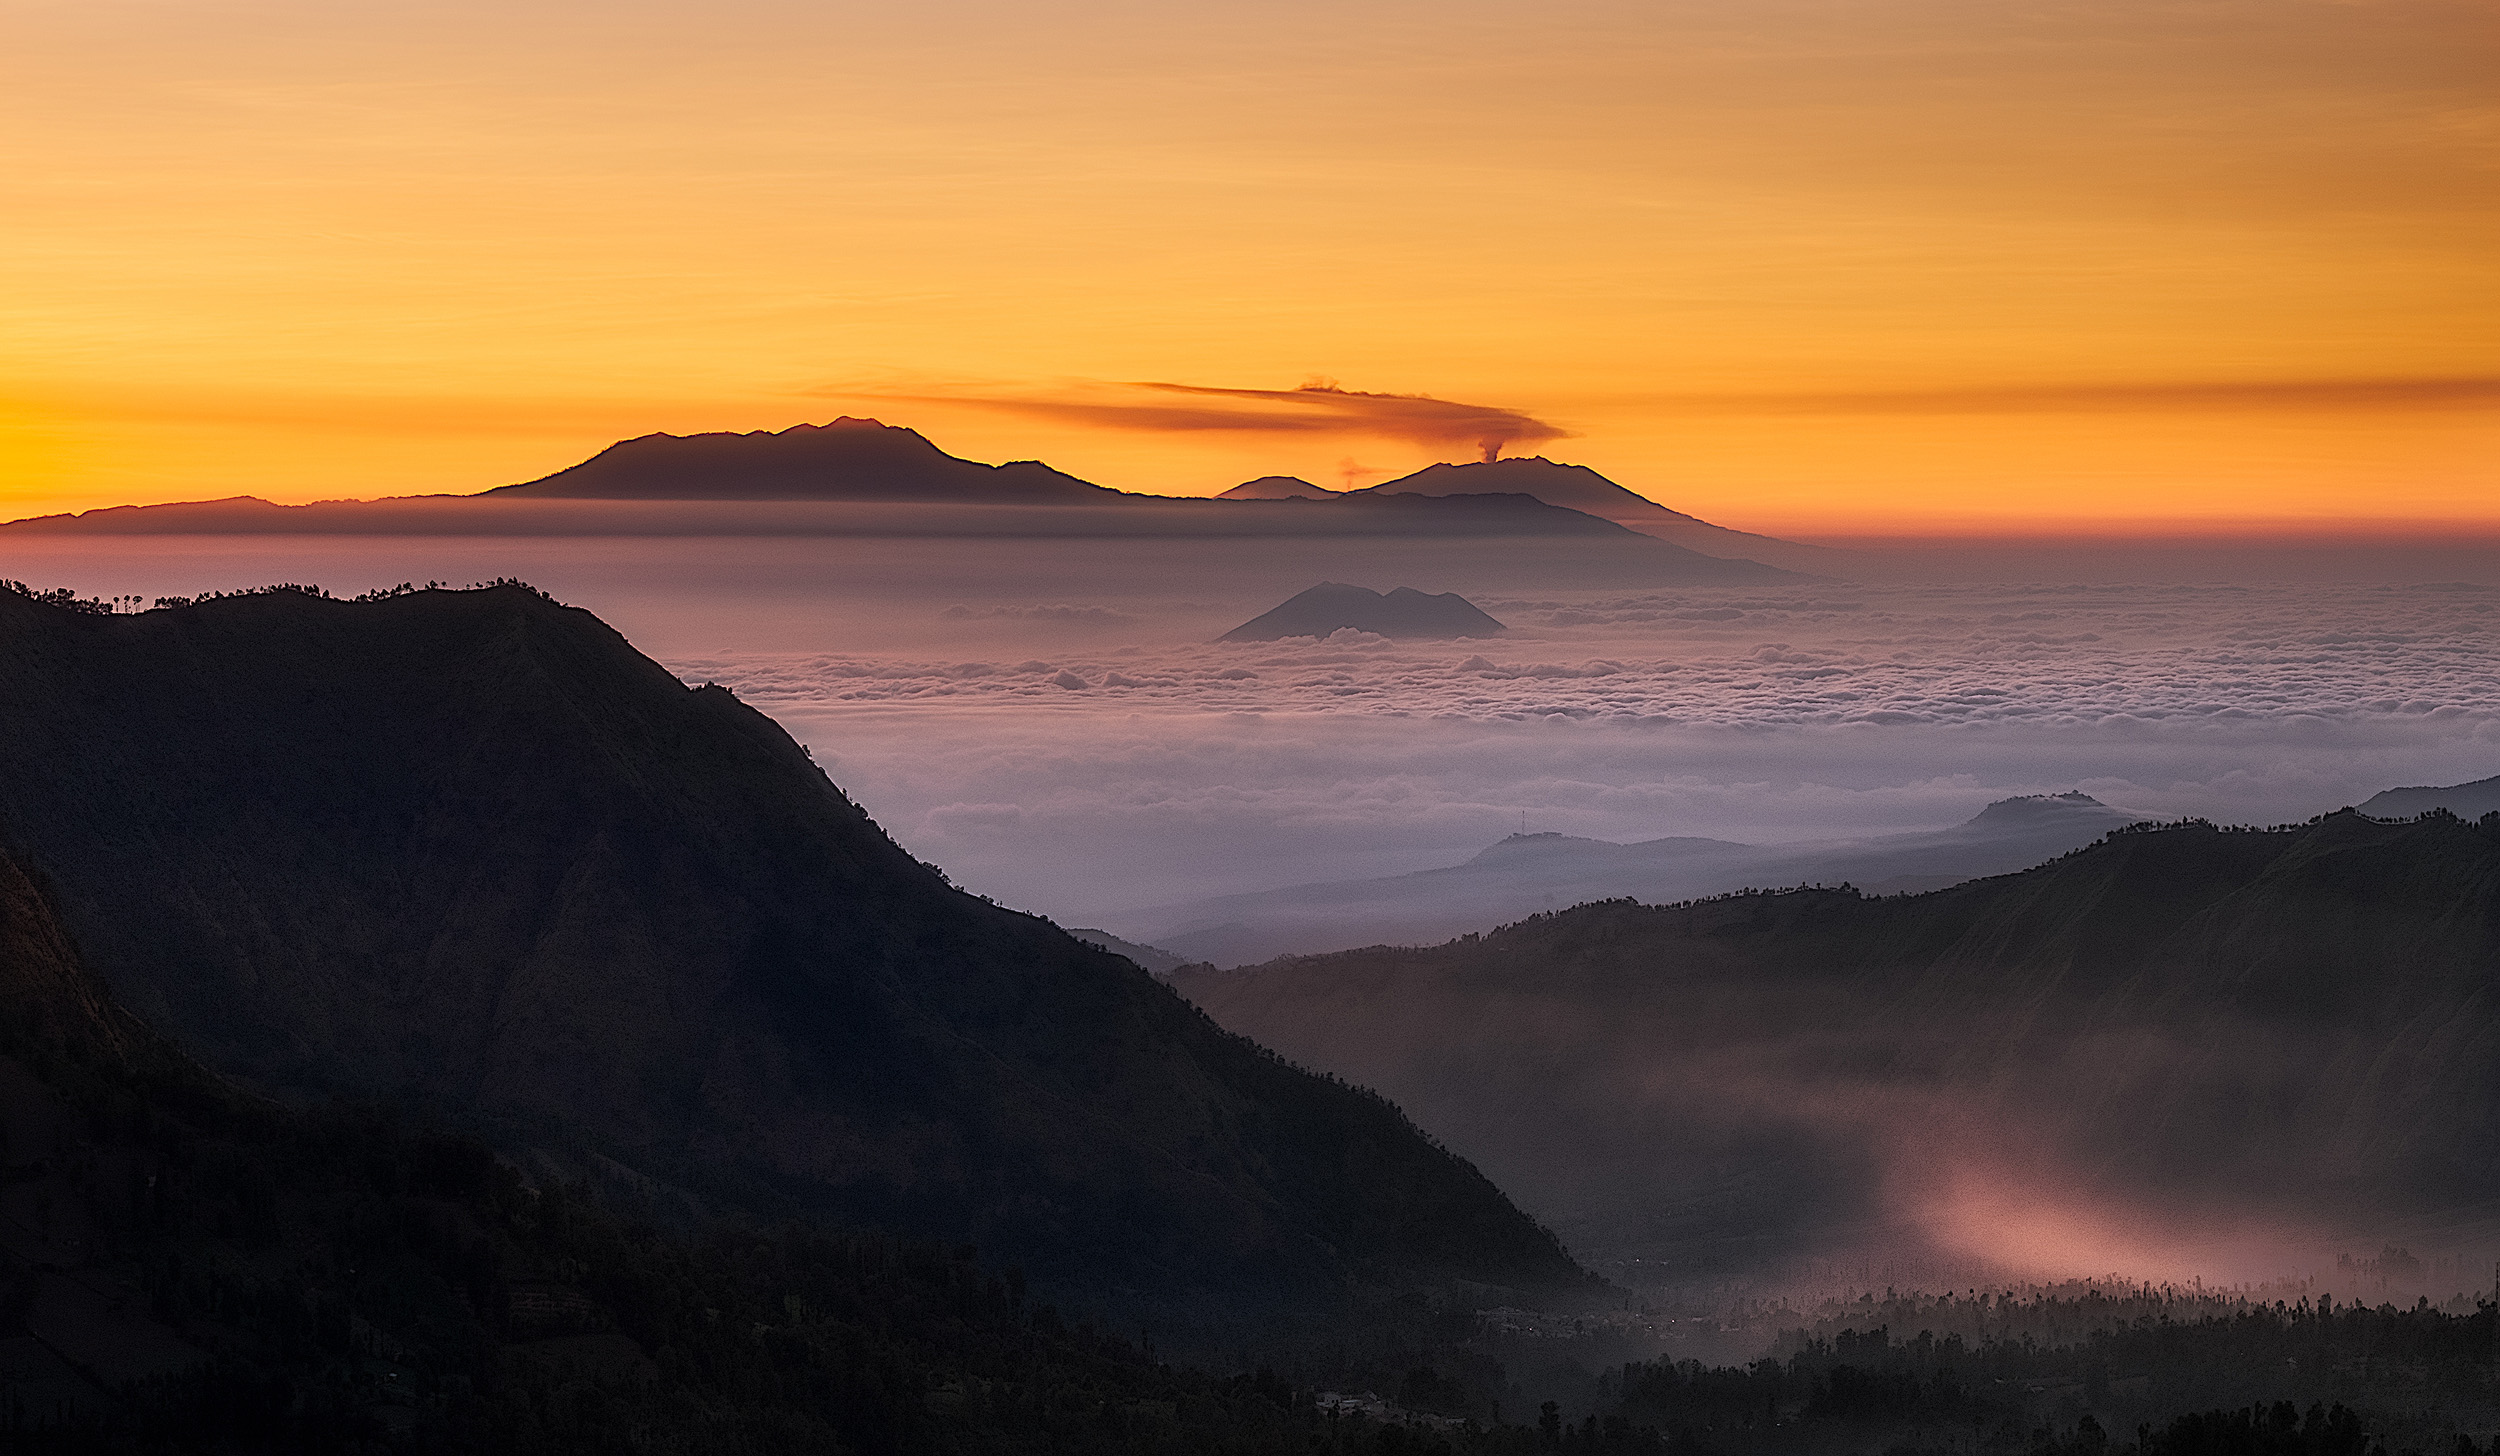 East Java Sunrise   Looking east from Penanjakan on the Bromo crater as the sun rises across the volcanos of eastern Java. The small peak surrounded by cloud is the Gunung Lembongan and behind that and to the left is the 3000m Gunung Argapura. Behind that is the smoking Gunung Raung, the volcano that disrupted so many flights to and from Bali in August and September 2015. It's about 120km away from where we were standing.